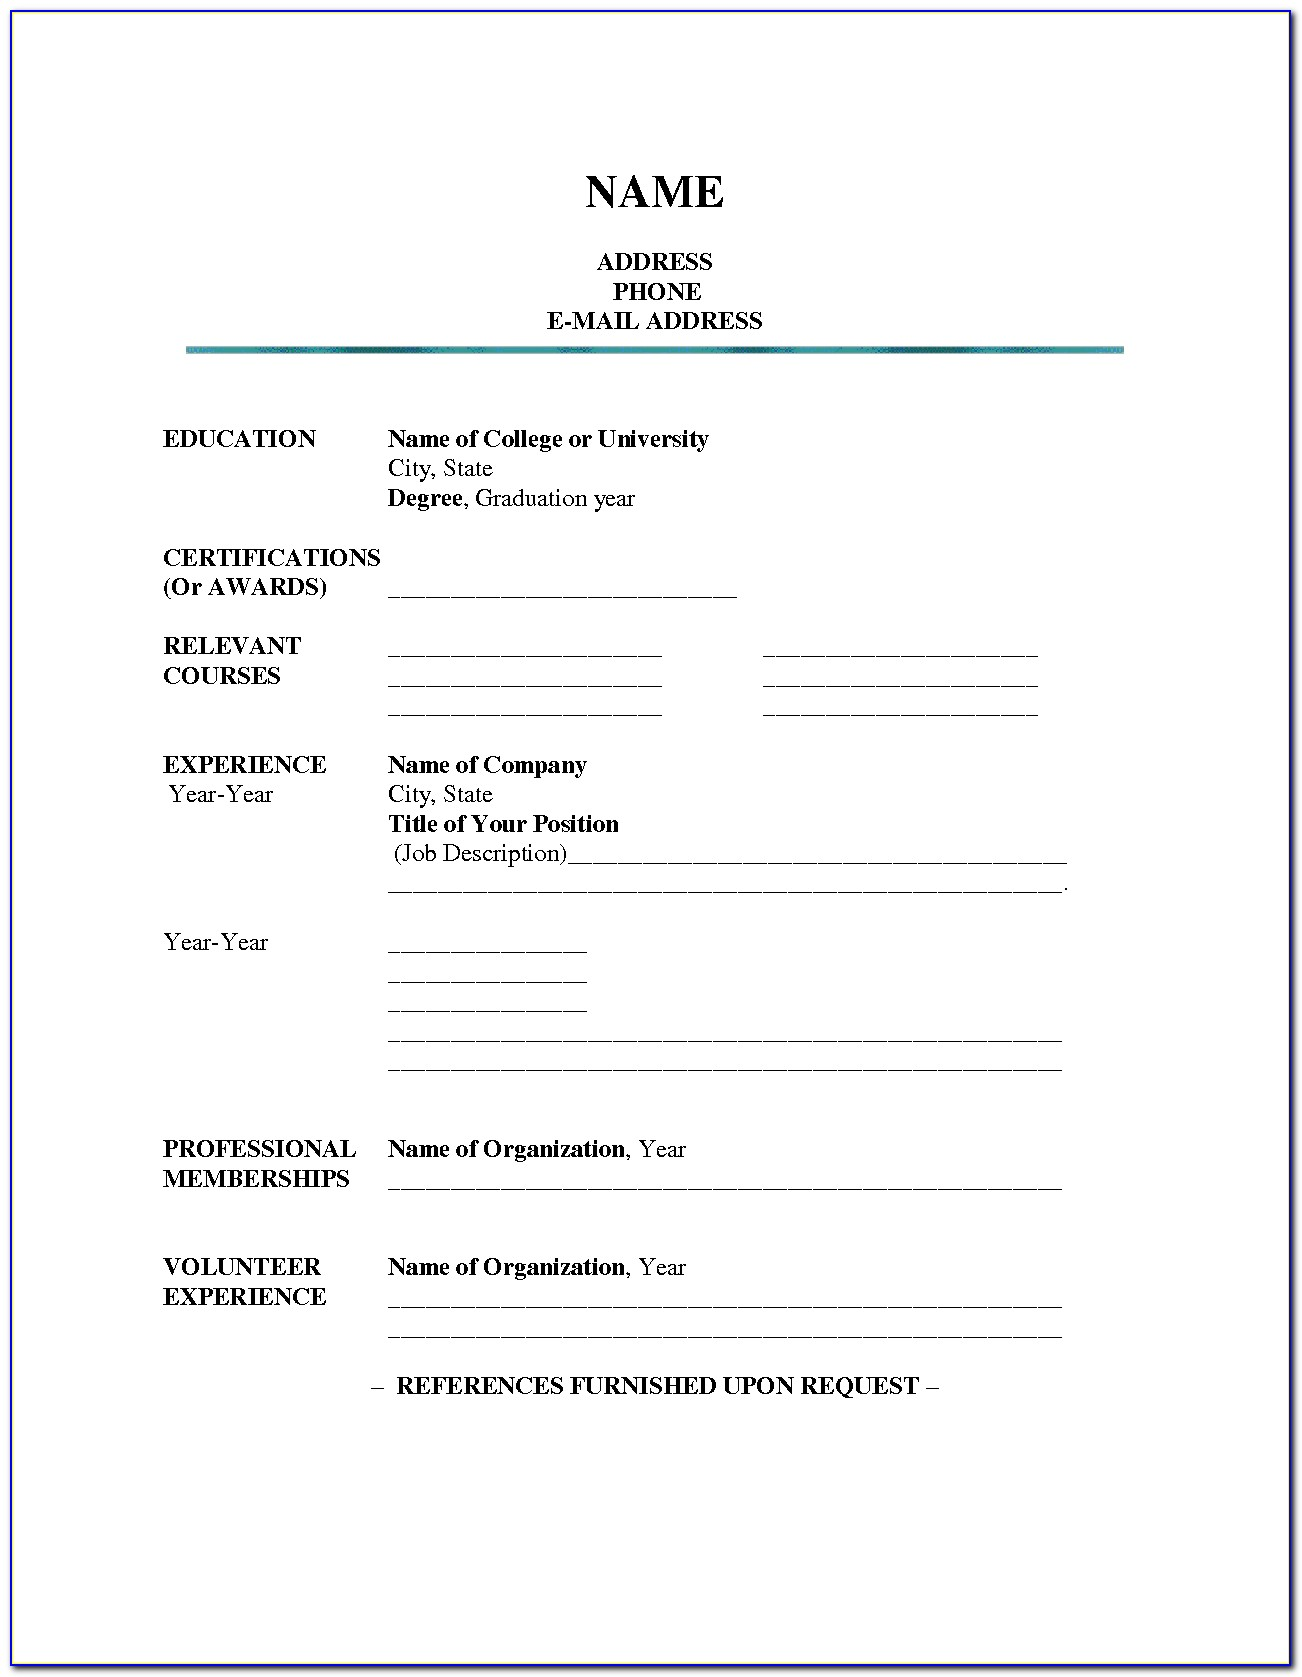 Resume Blank Form Download